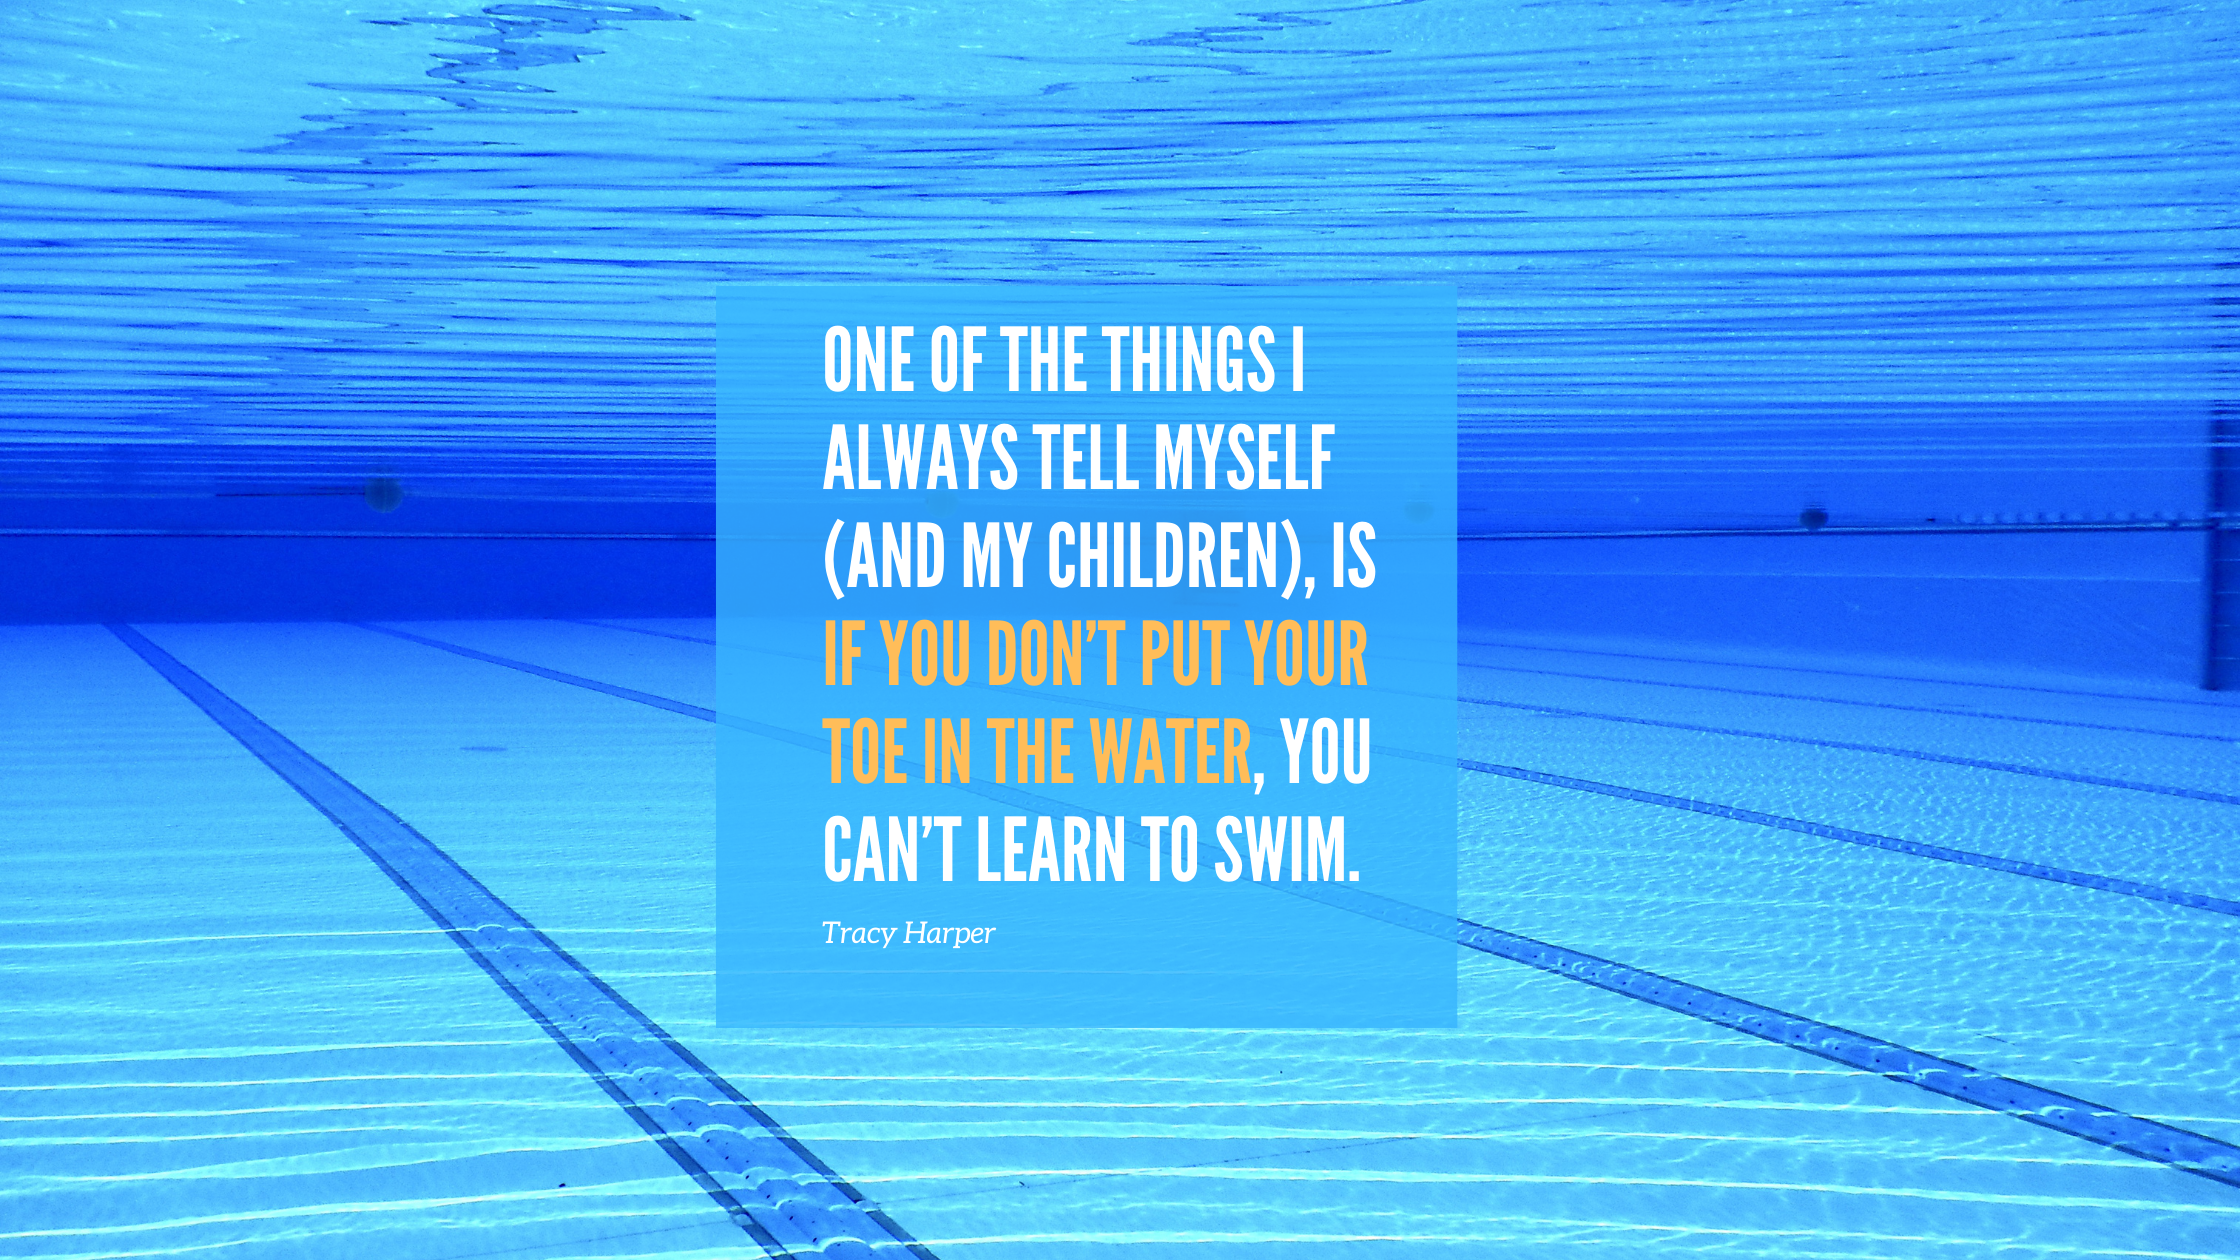 One of the things I always tell myself (and my children), is if you don't put your toe in the water, you can't learn to swim.